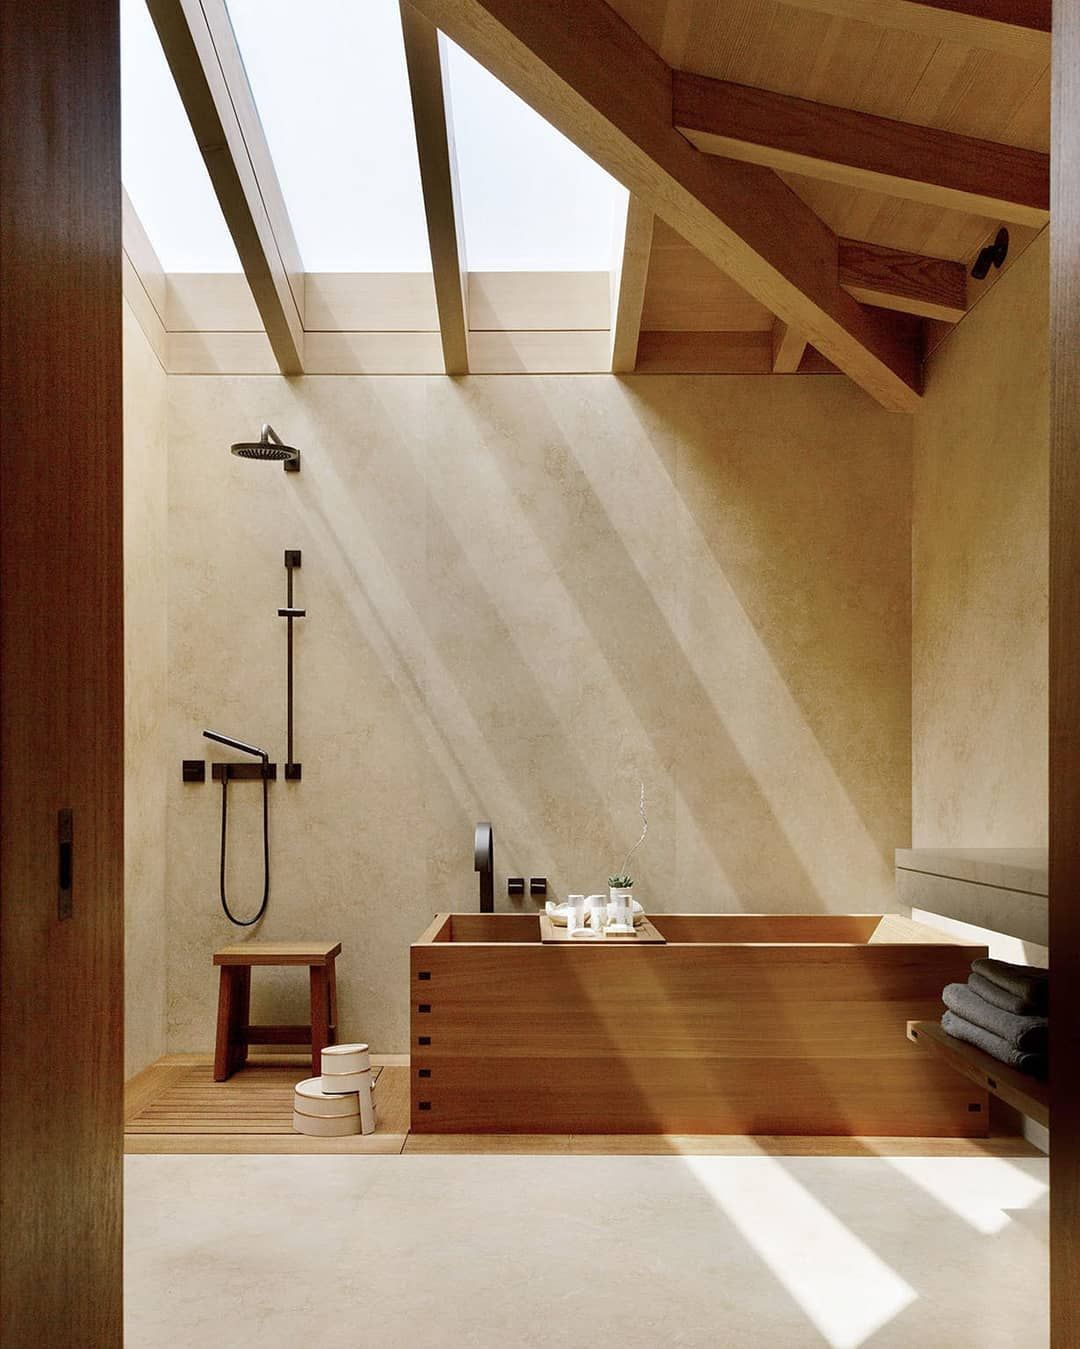 """Photo of 31 Chapel Lane on Instagram: """"Japanese wooden soaking tub 🛀 Nobu Ryokan, Carbon Beach, Malibu CA, by Montalba Architects and Studio PCH, completed 2017"""""""